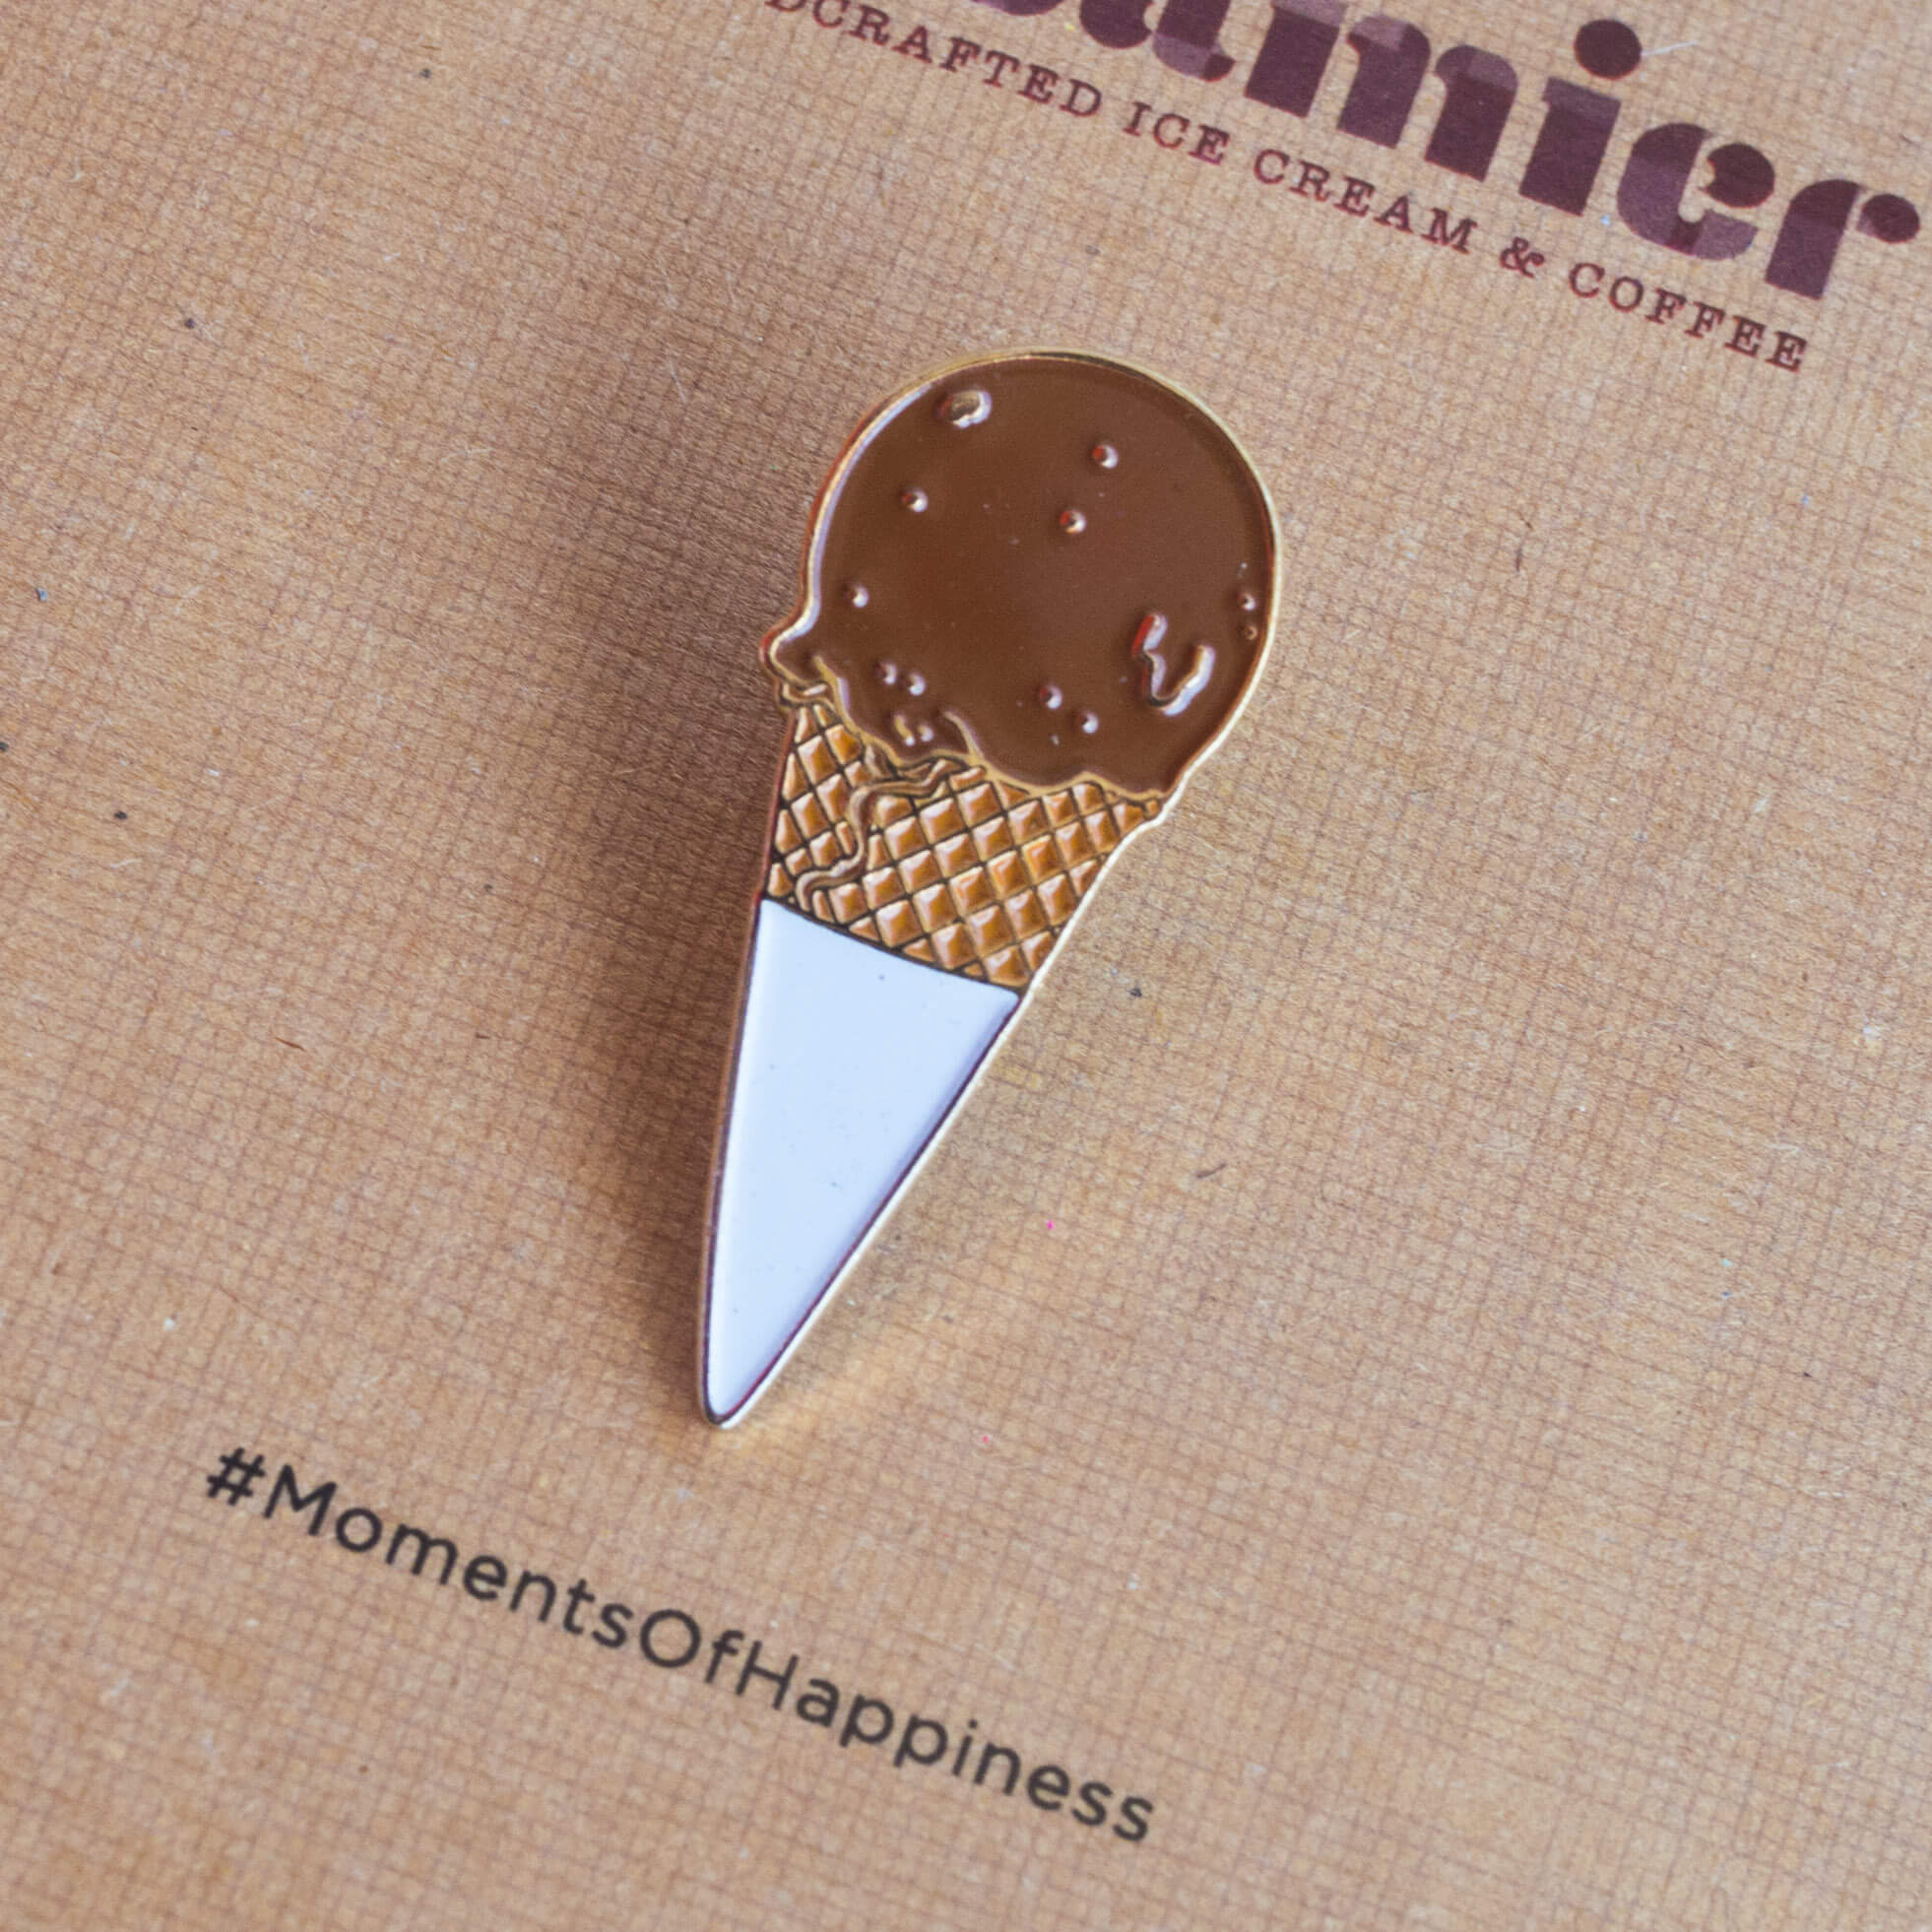 Plain Ole Chocolate Cone Pin